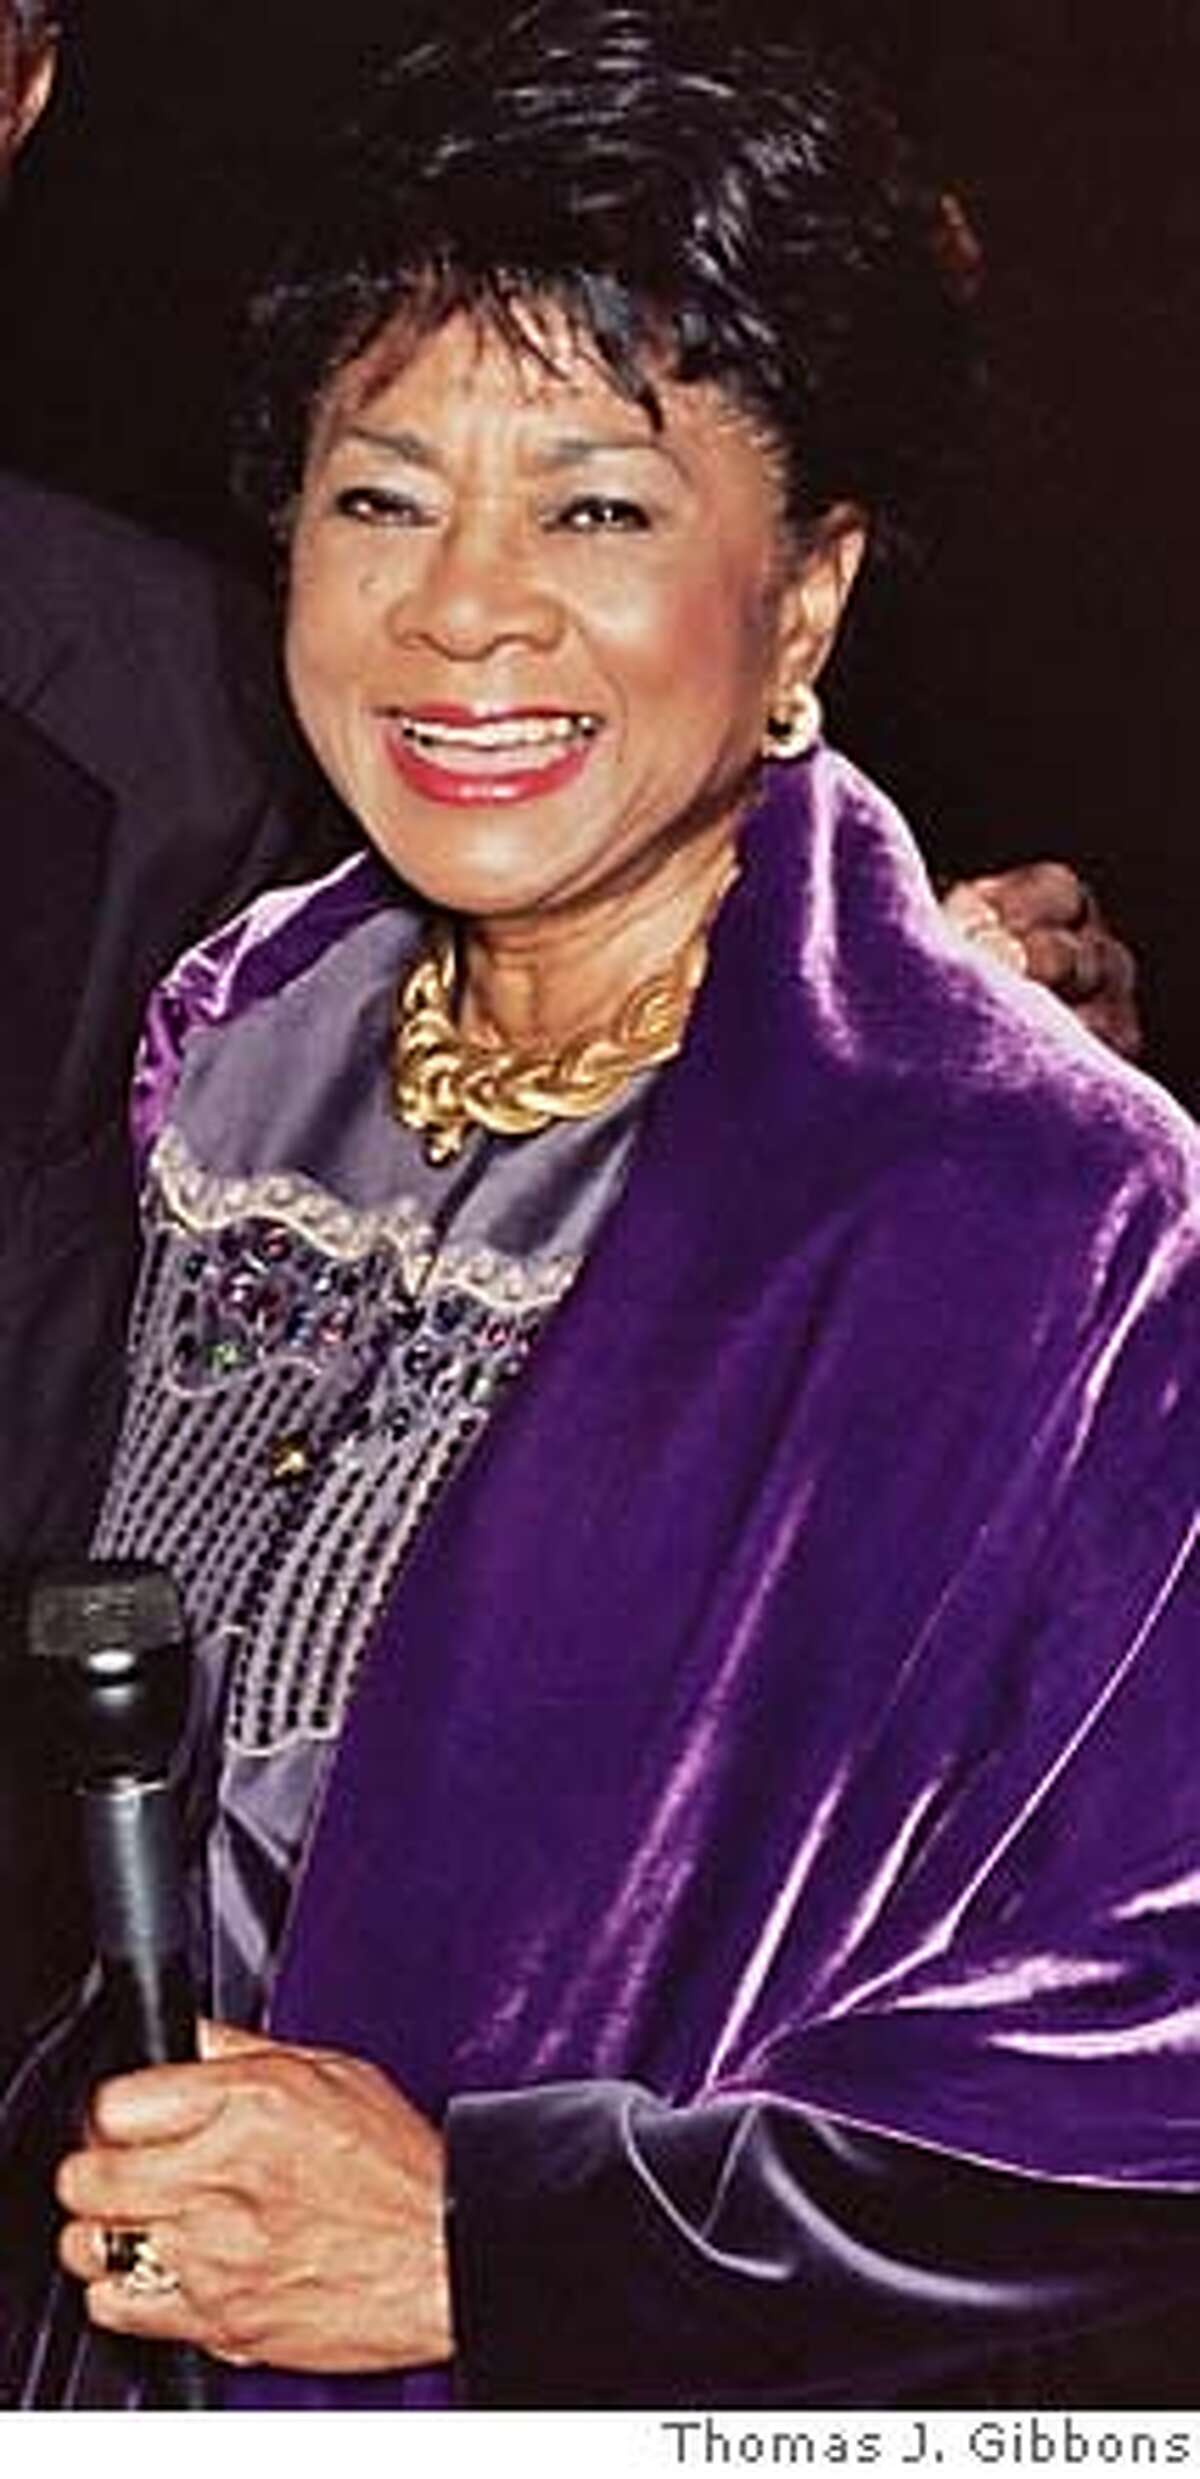 Deserving of the Bay Area Radio Hall of Fame, according to our Radio Waves columnist: Belva Davis.